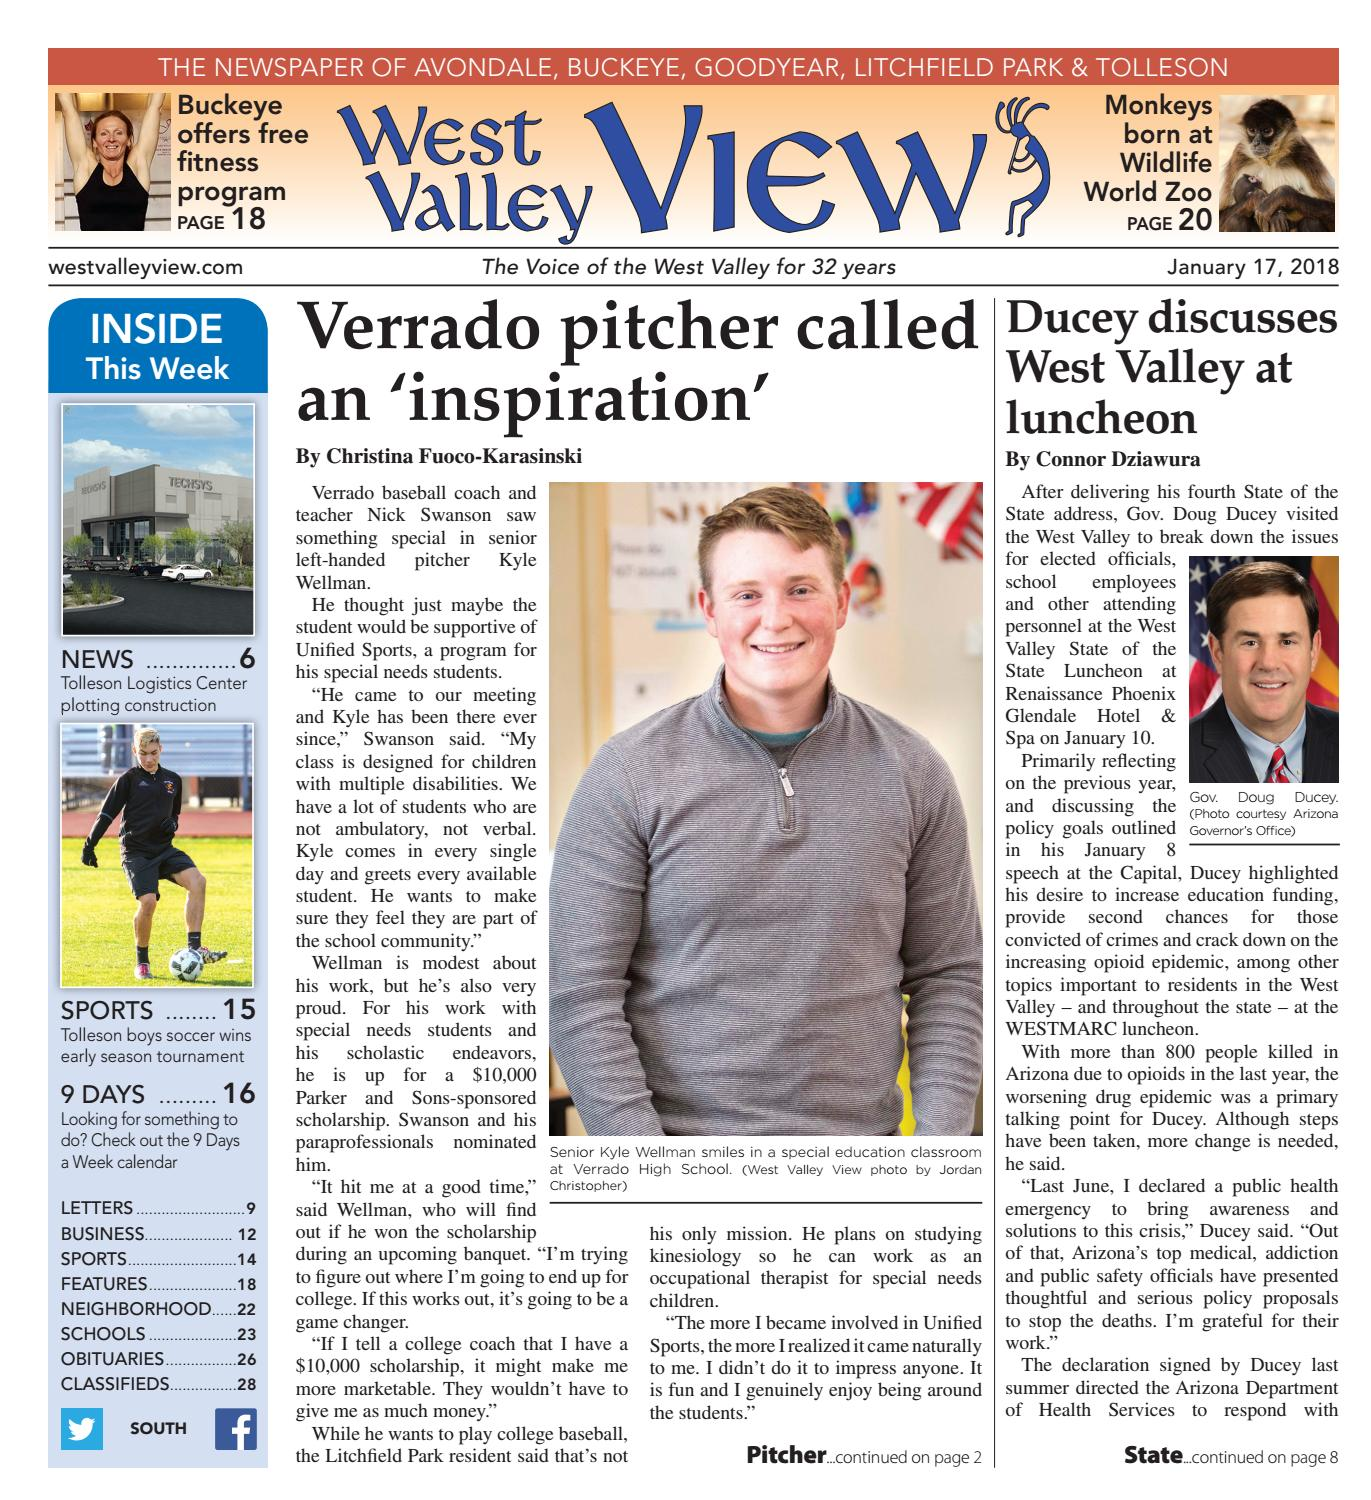 West Valley View South January 17 2018 By Times Media Group Issuu